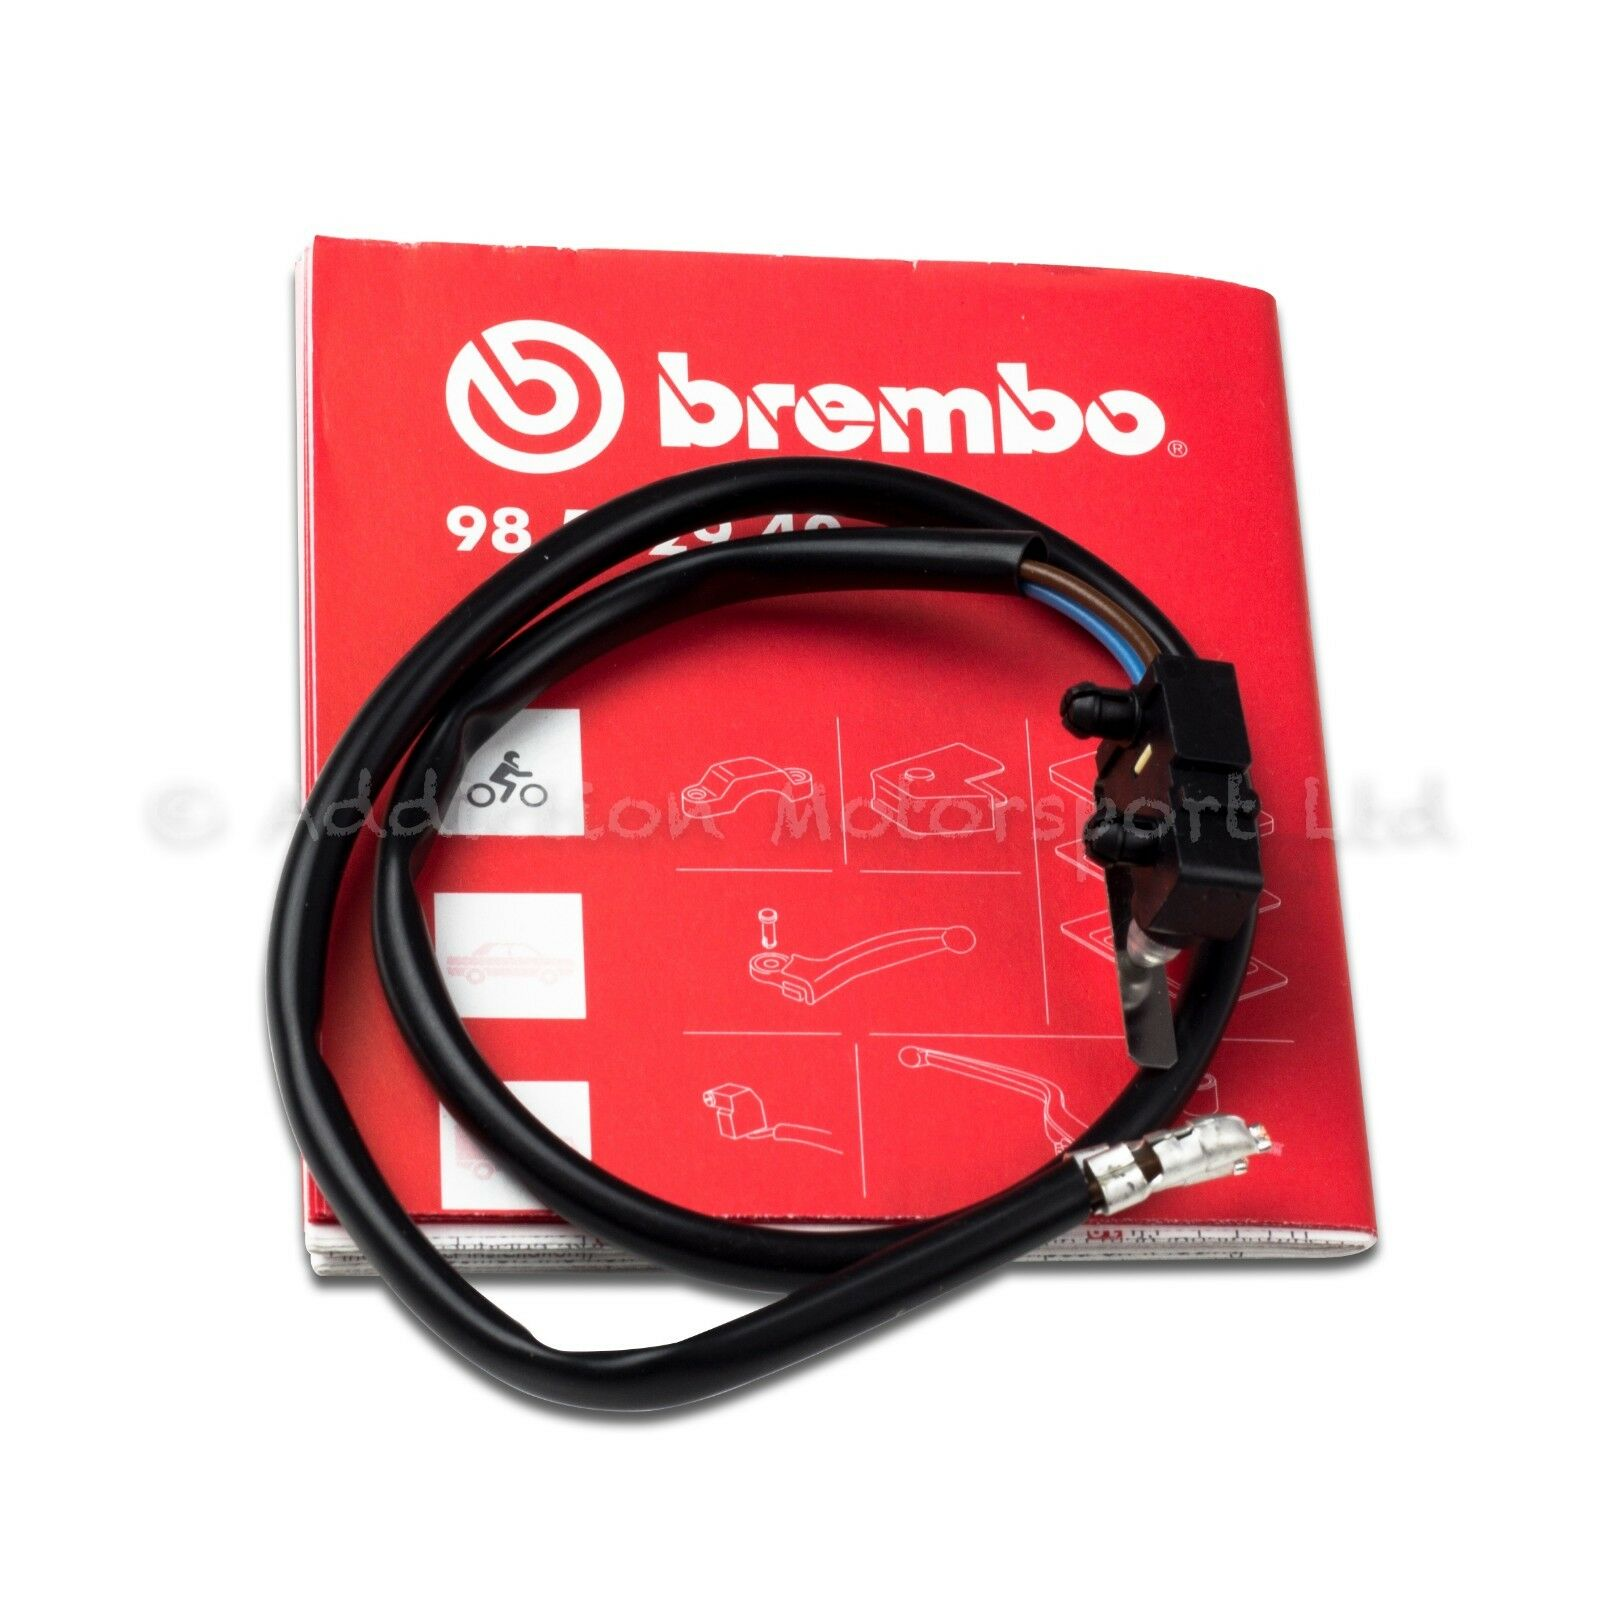 Ducati Brembo Front Brake Master Cylinder Microswitch Micro Switch Kit